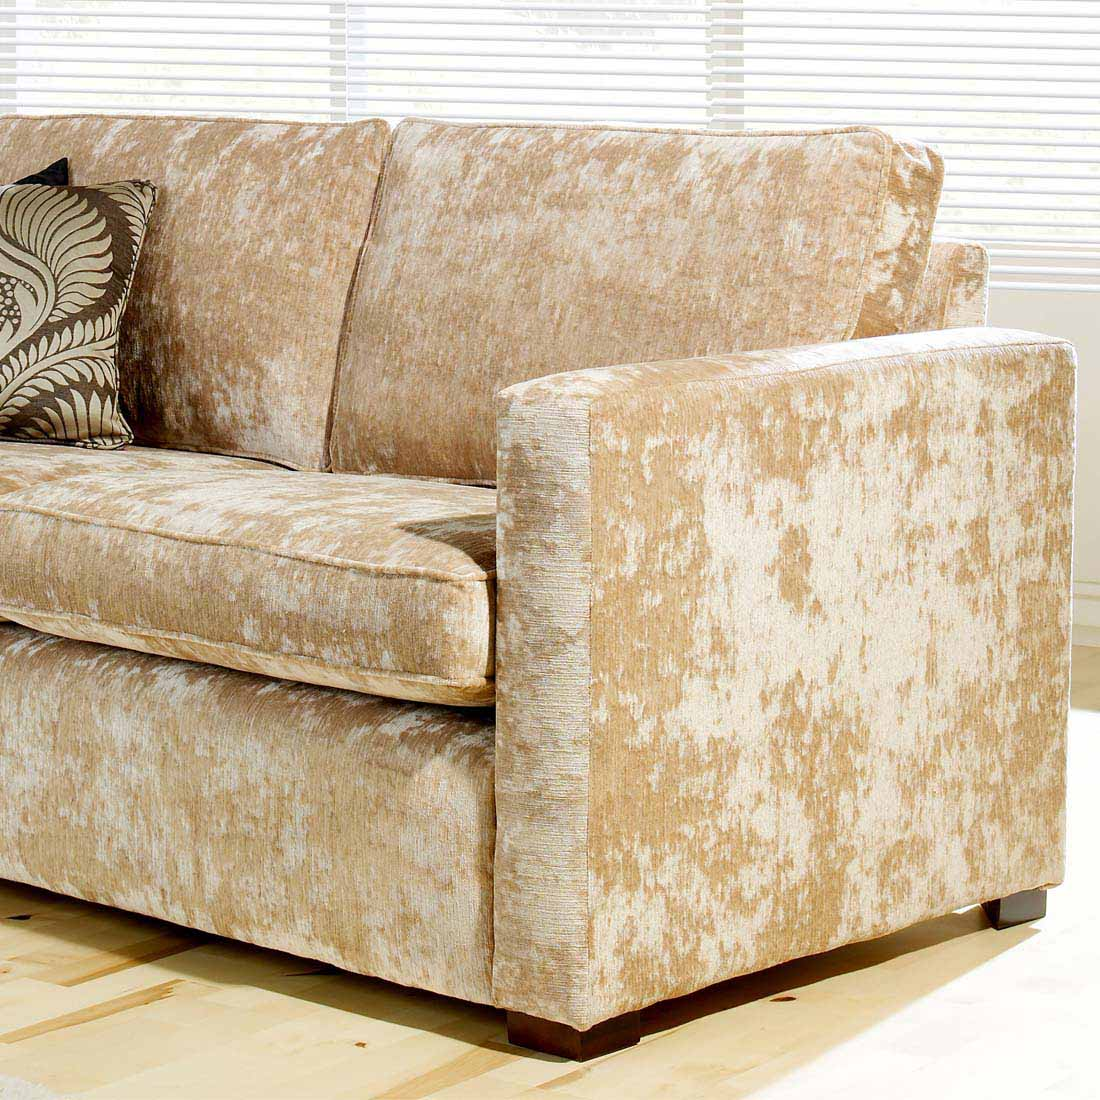 sofa bed bestway 5 in 1 dfs orbit 2 seater heather forest contract